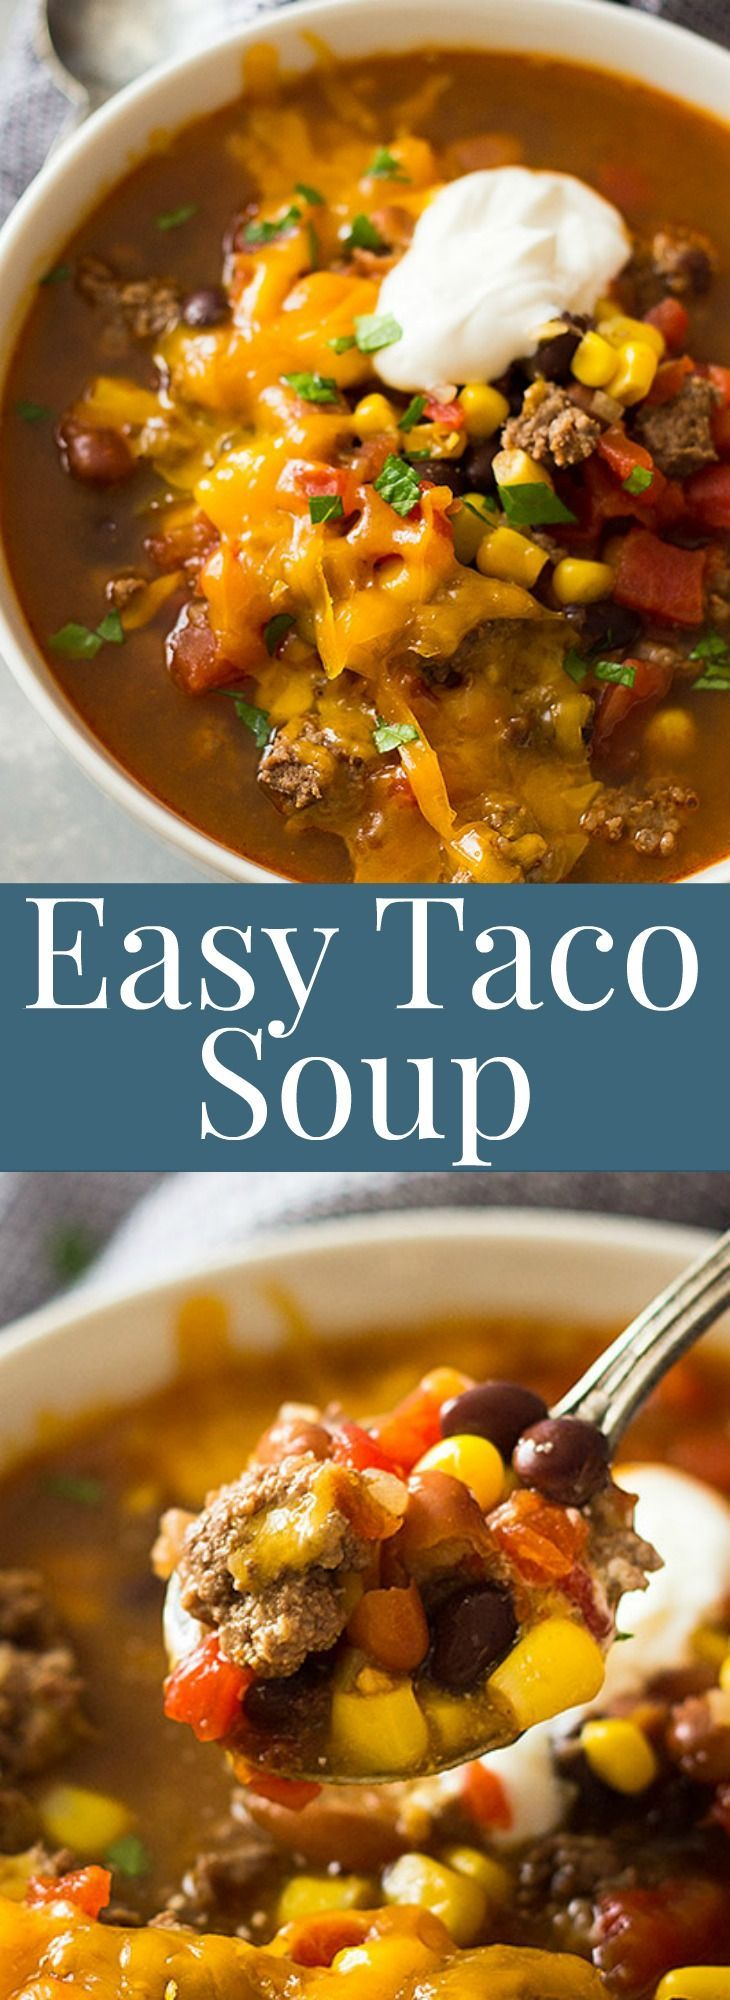 This Easy Taco Soup is packed with flavor, takes less than 30 minutes to make and there is a slow cooker version! |